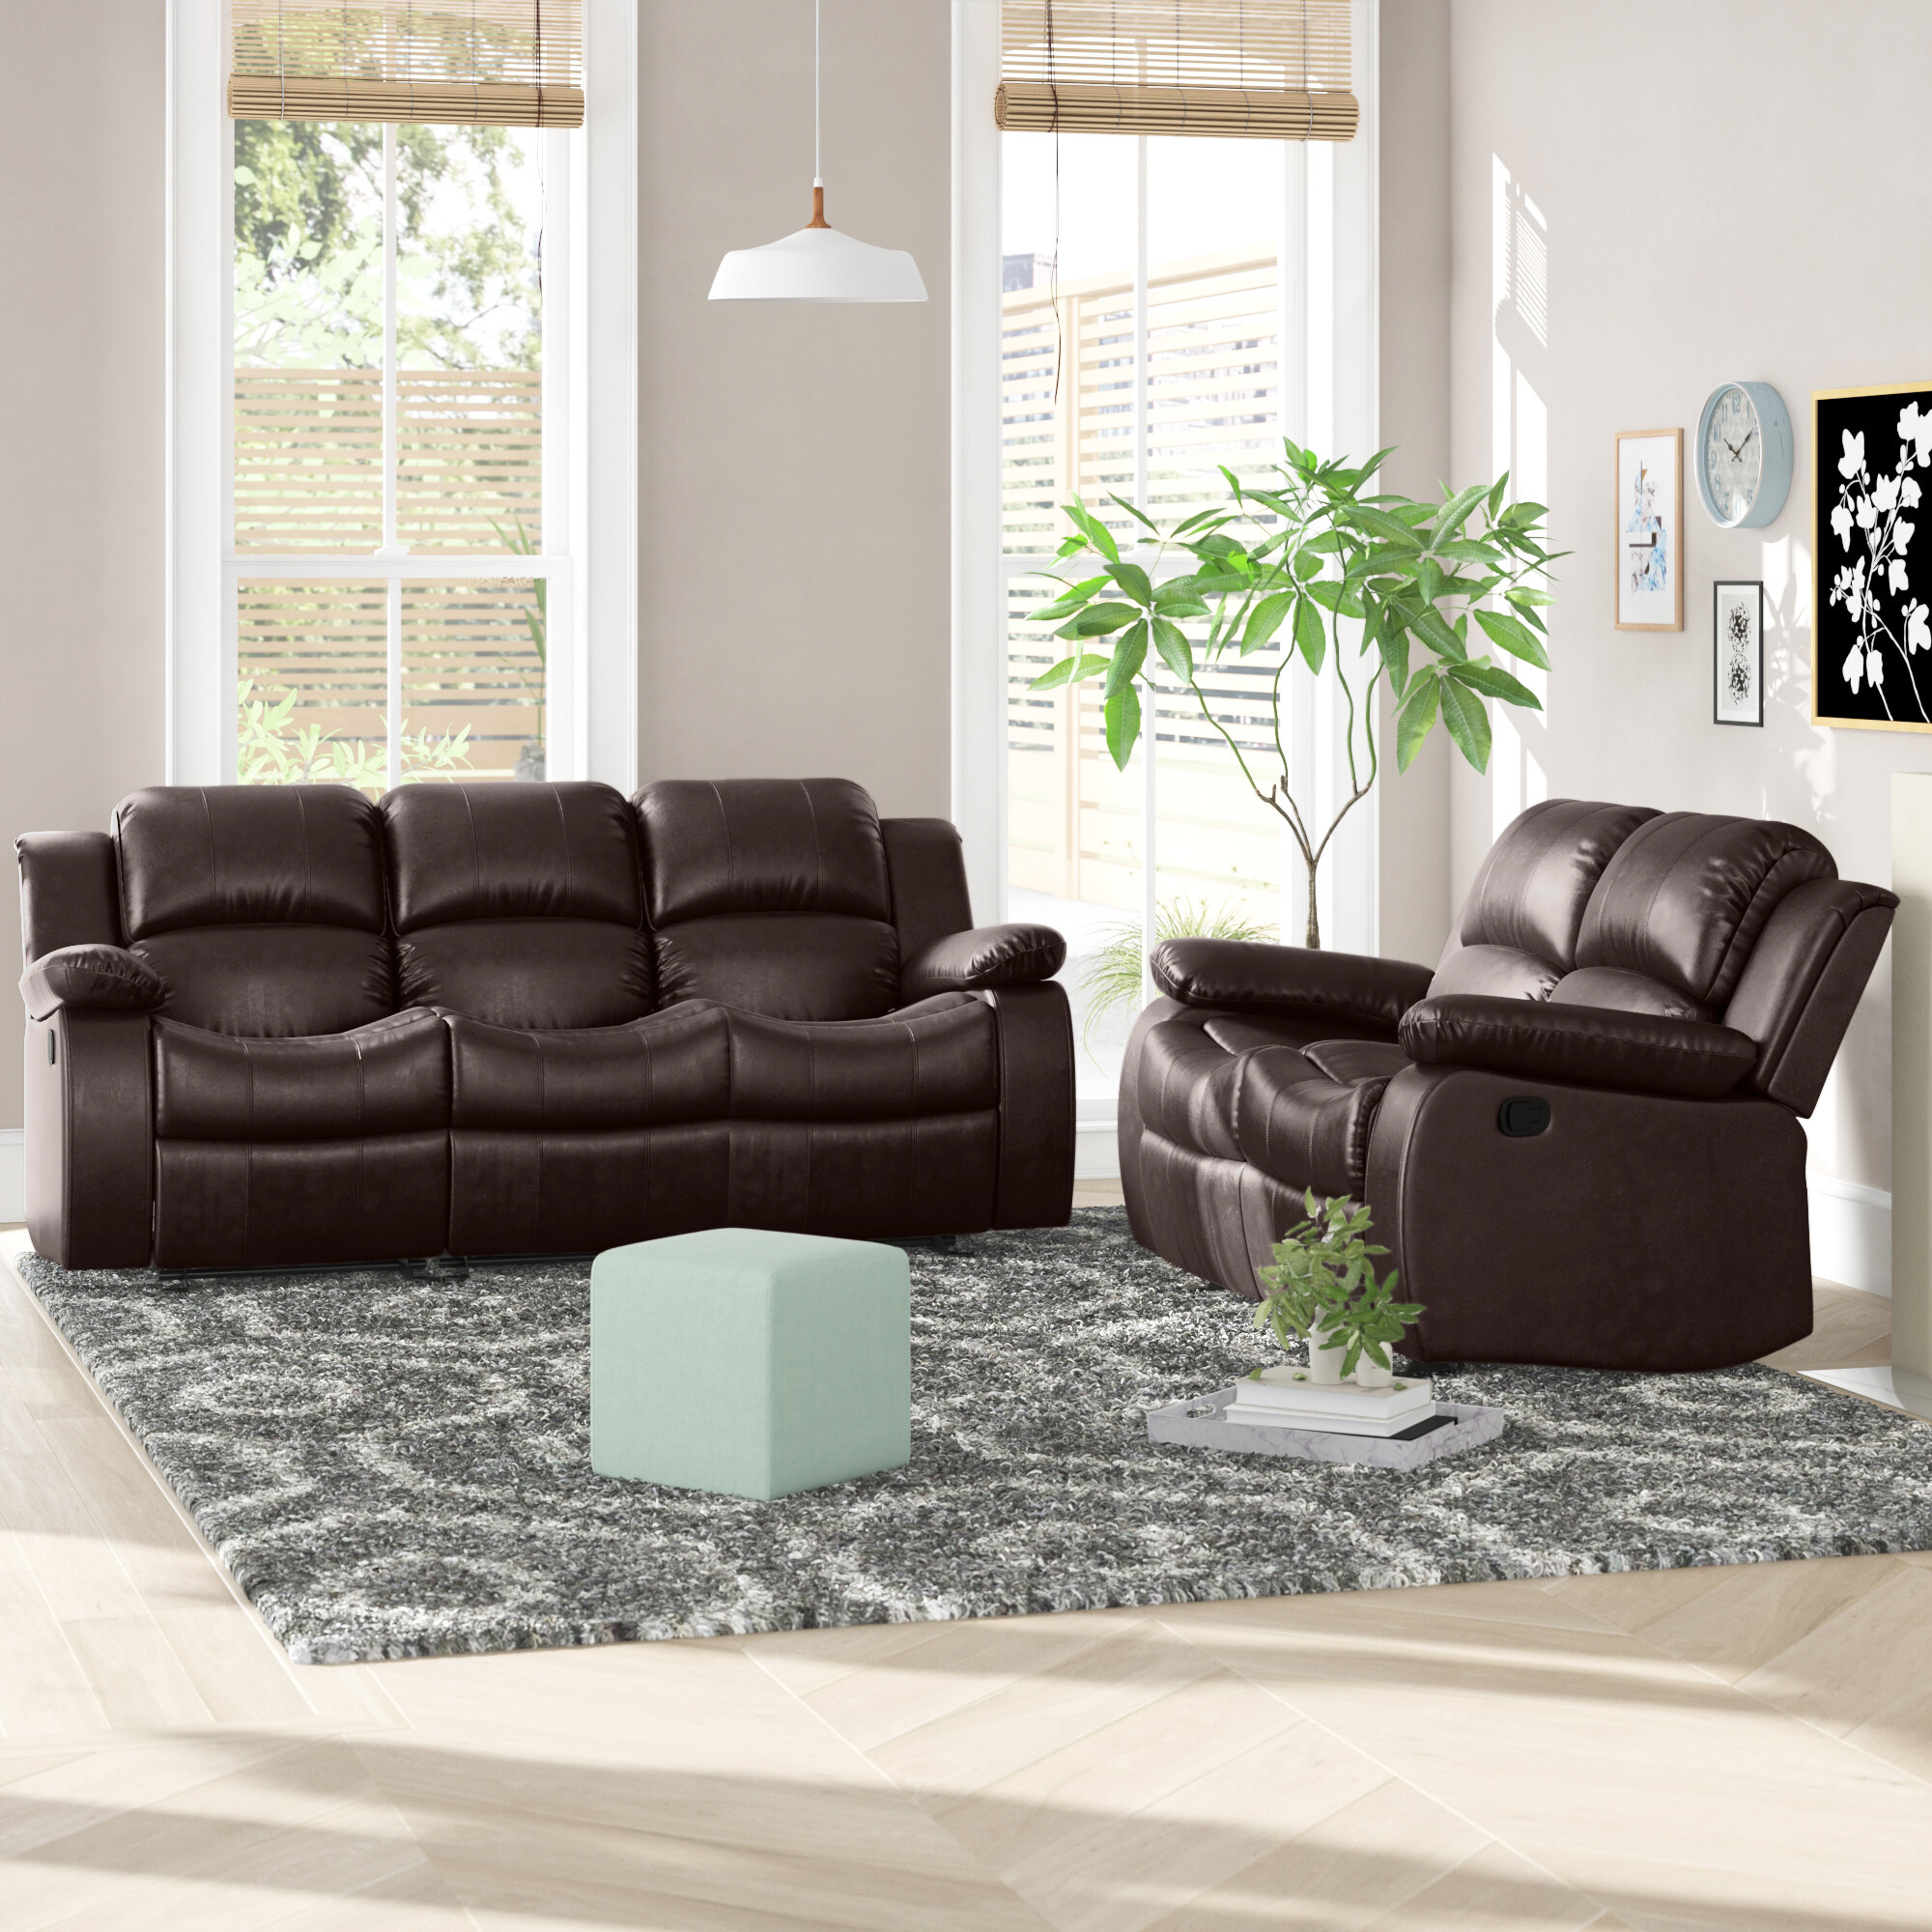 Bryce 12 Piece Faux Leather Reclining Living Room Set